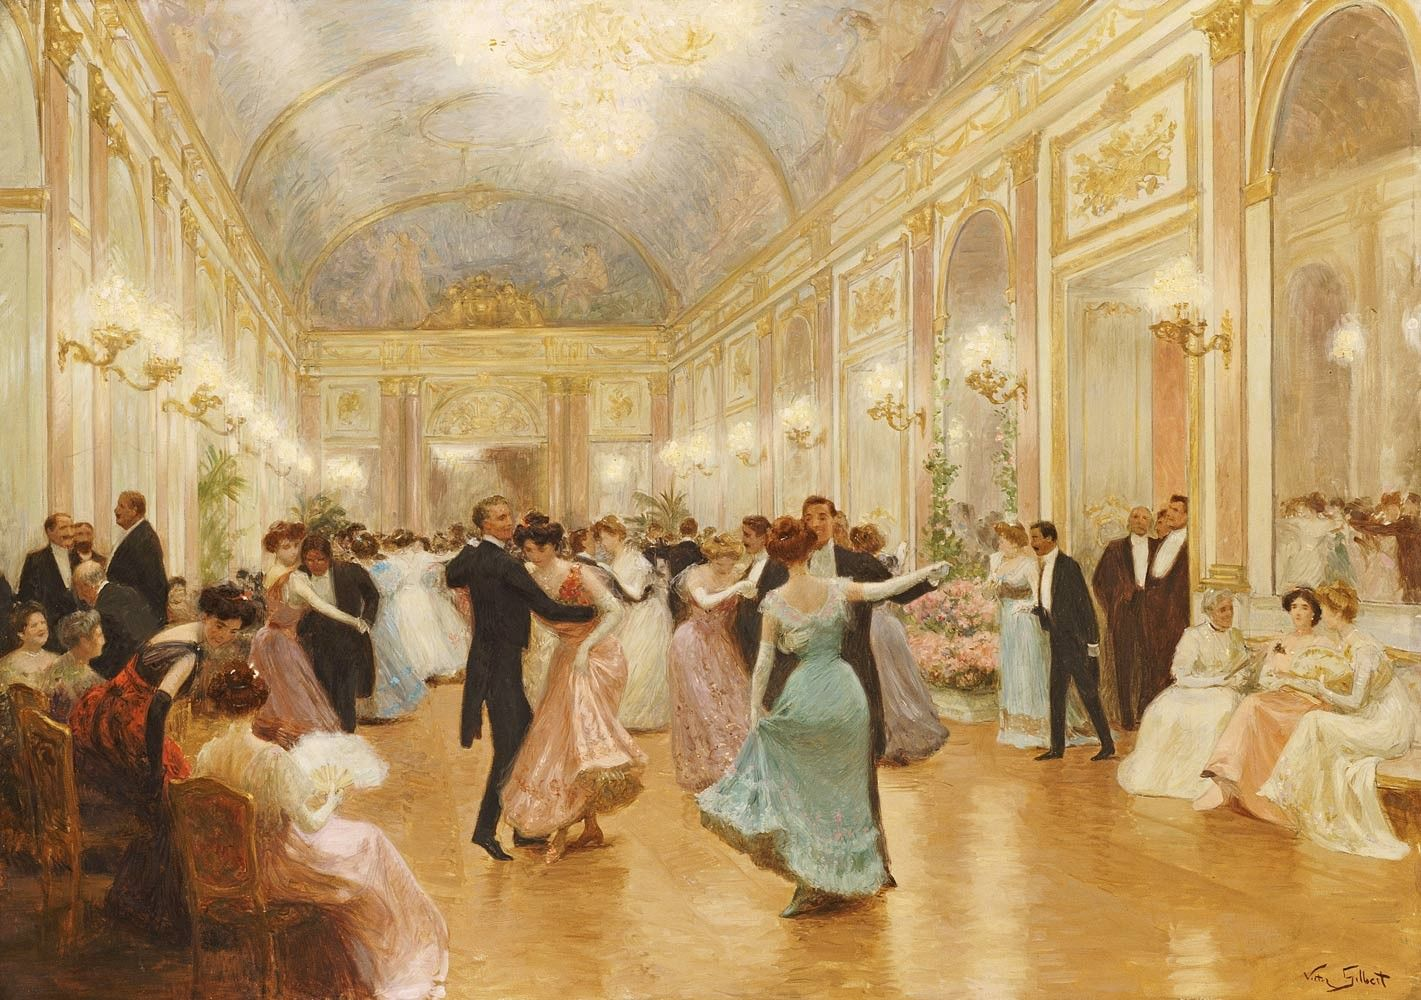 painting of a ball room filled with people Wall Mural | Victorian ...